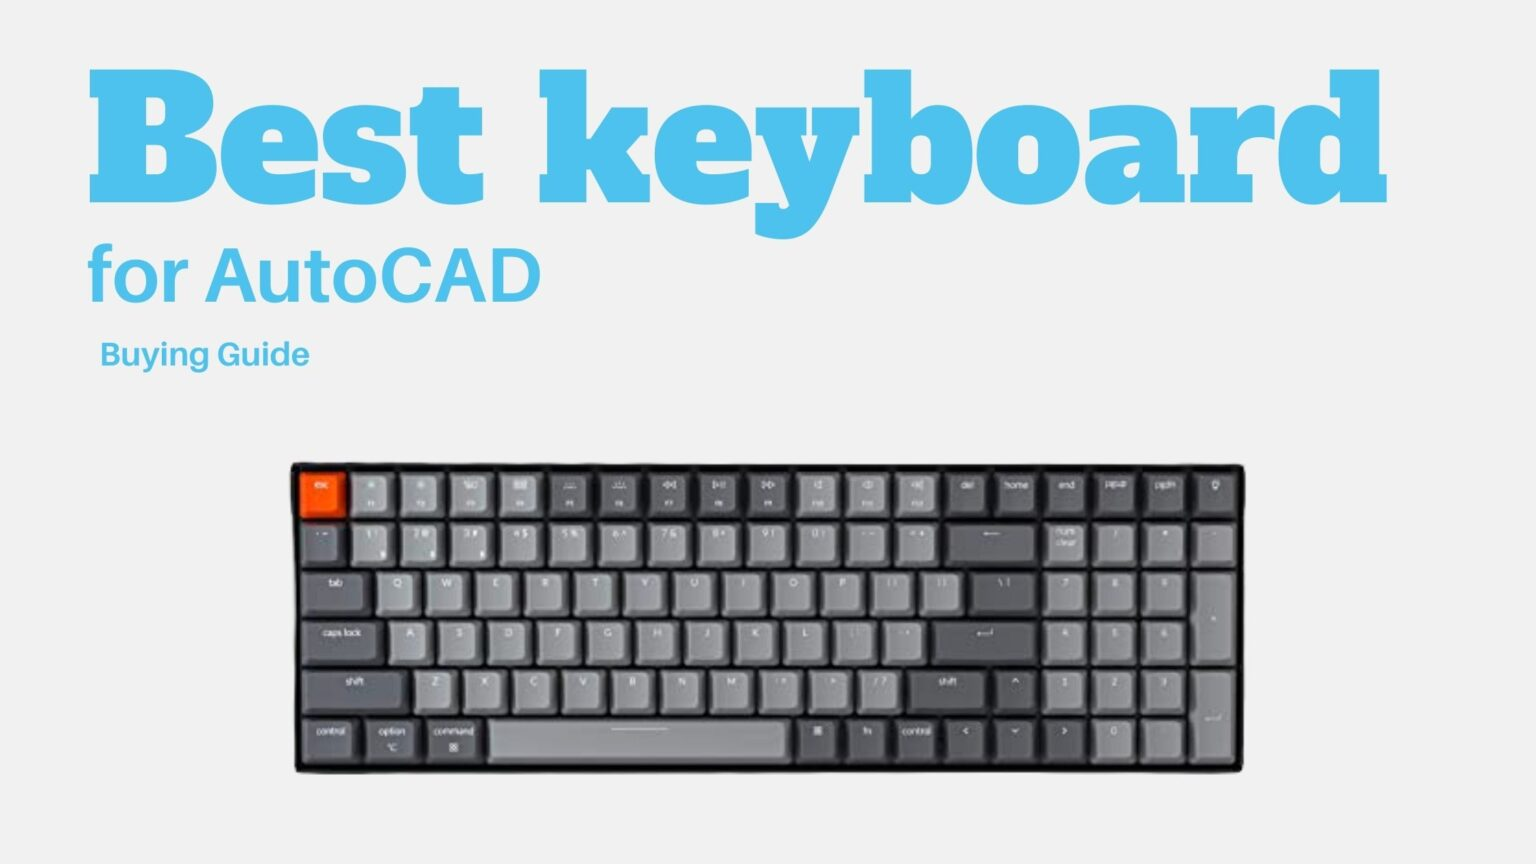 Top 10 Best keyboard for AutoCAD